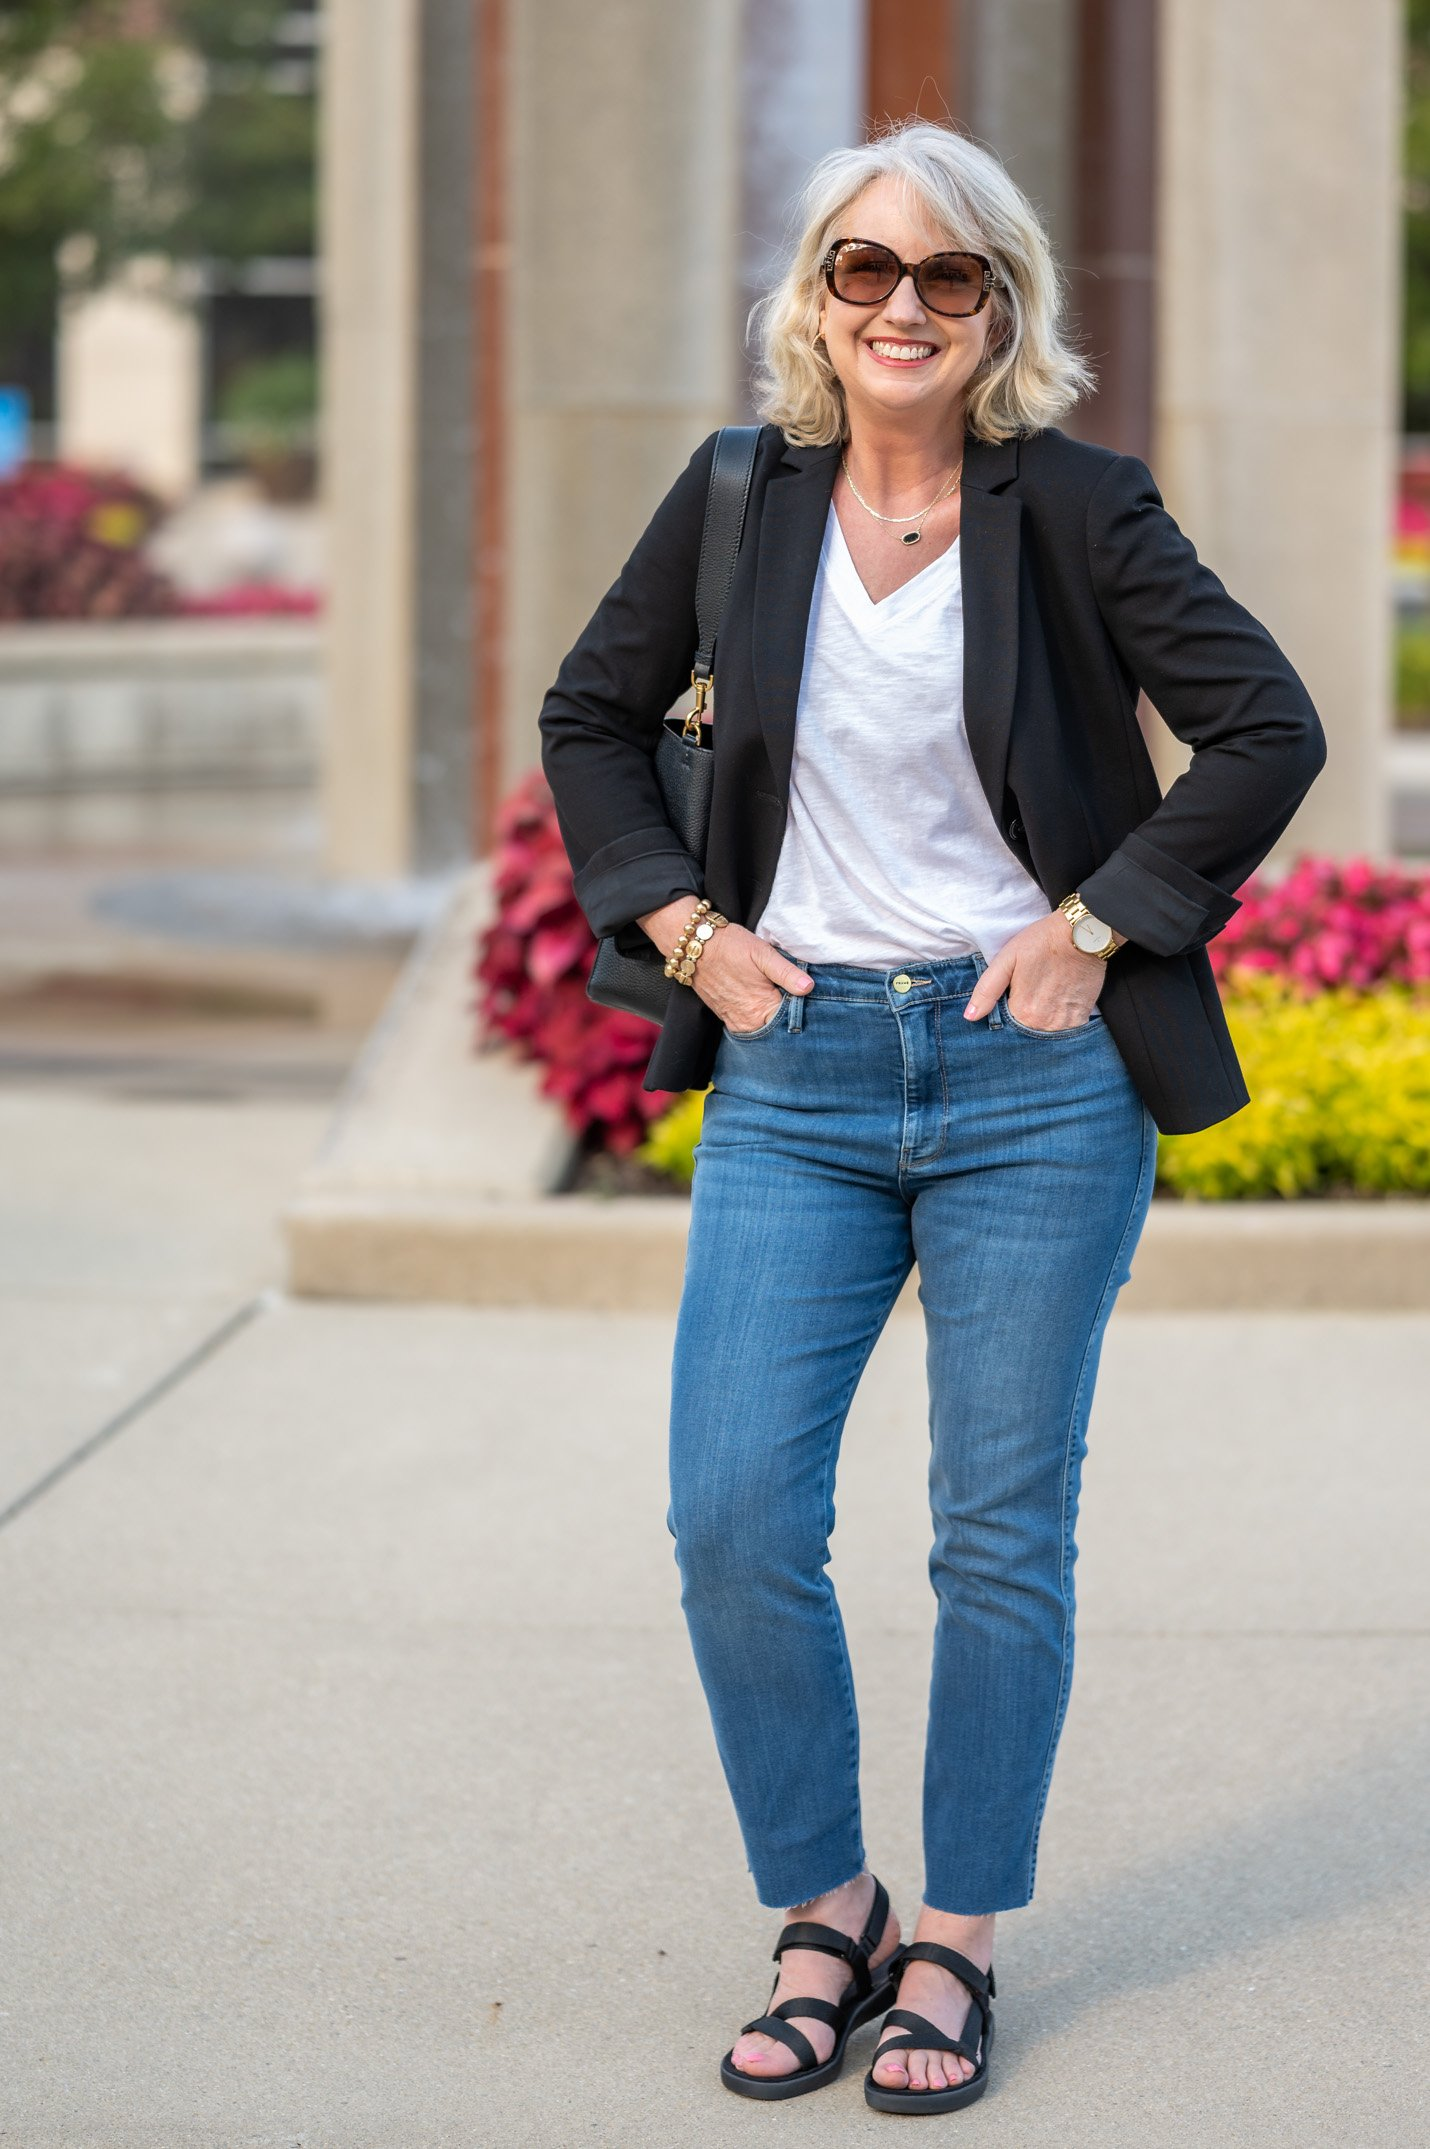 Suit Blazer with a Tee and Jeans